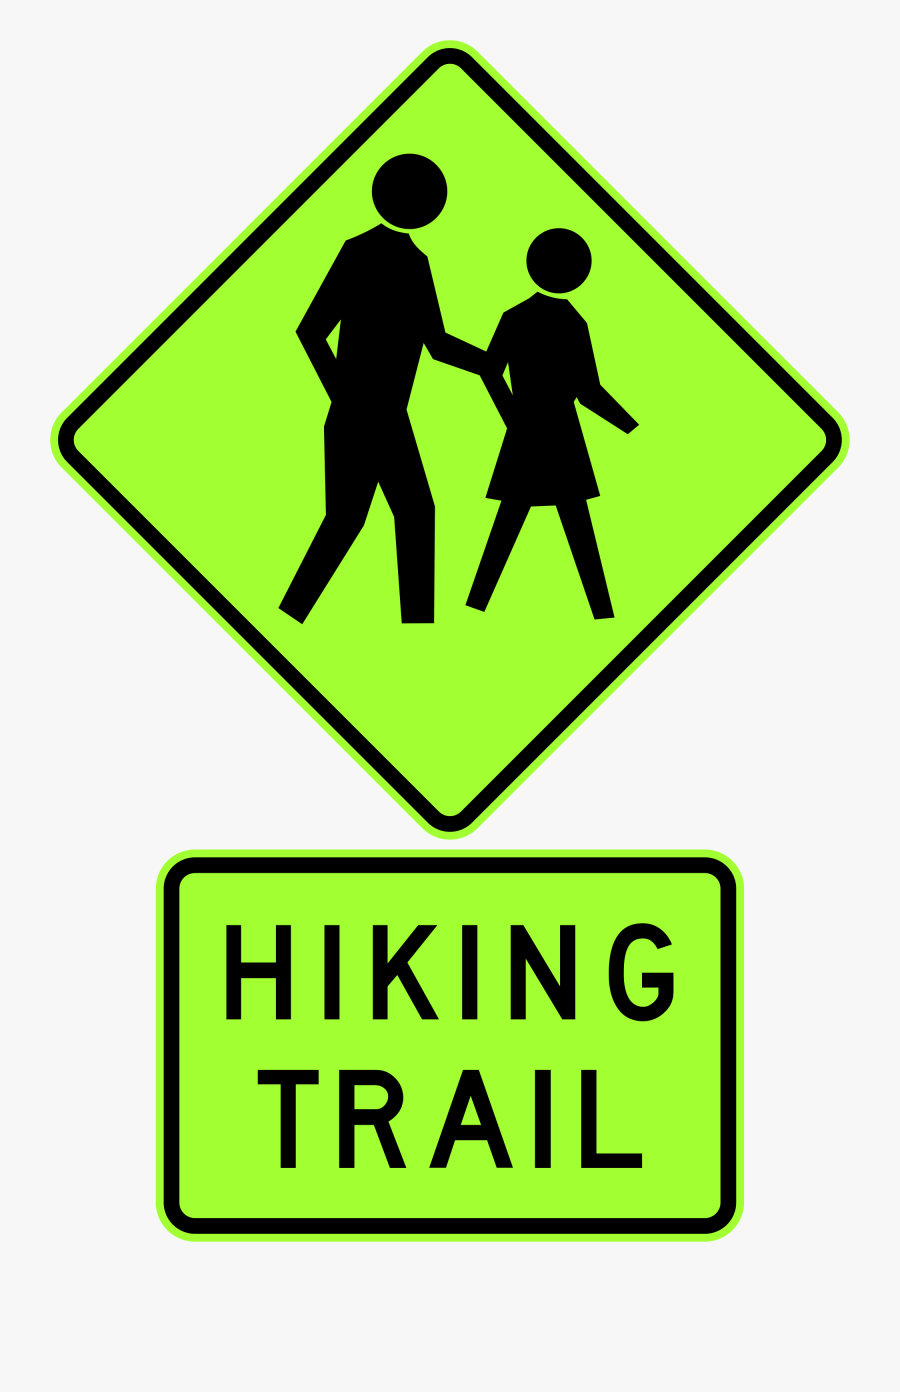 Does The Sign With Two People Walking Mean Clipart - Does The Sign With Two People Walking Mean, Transparent Clipart